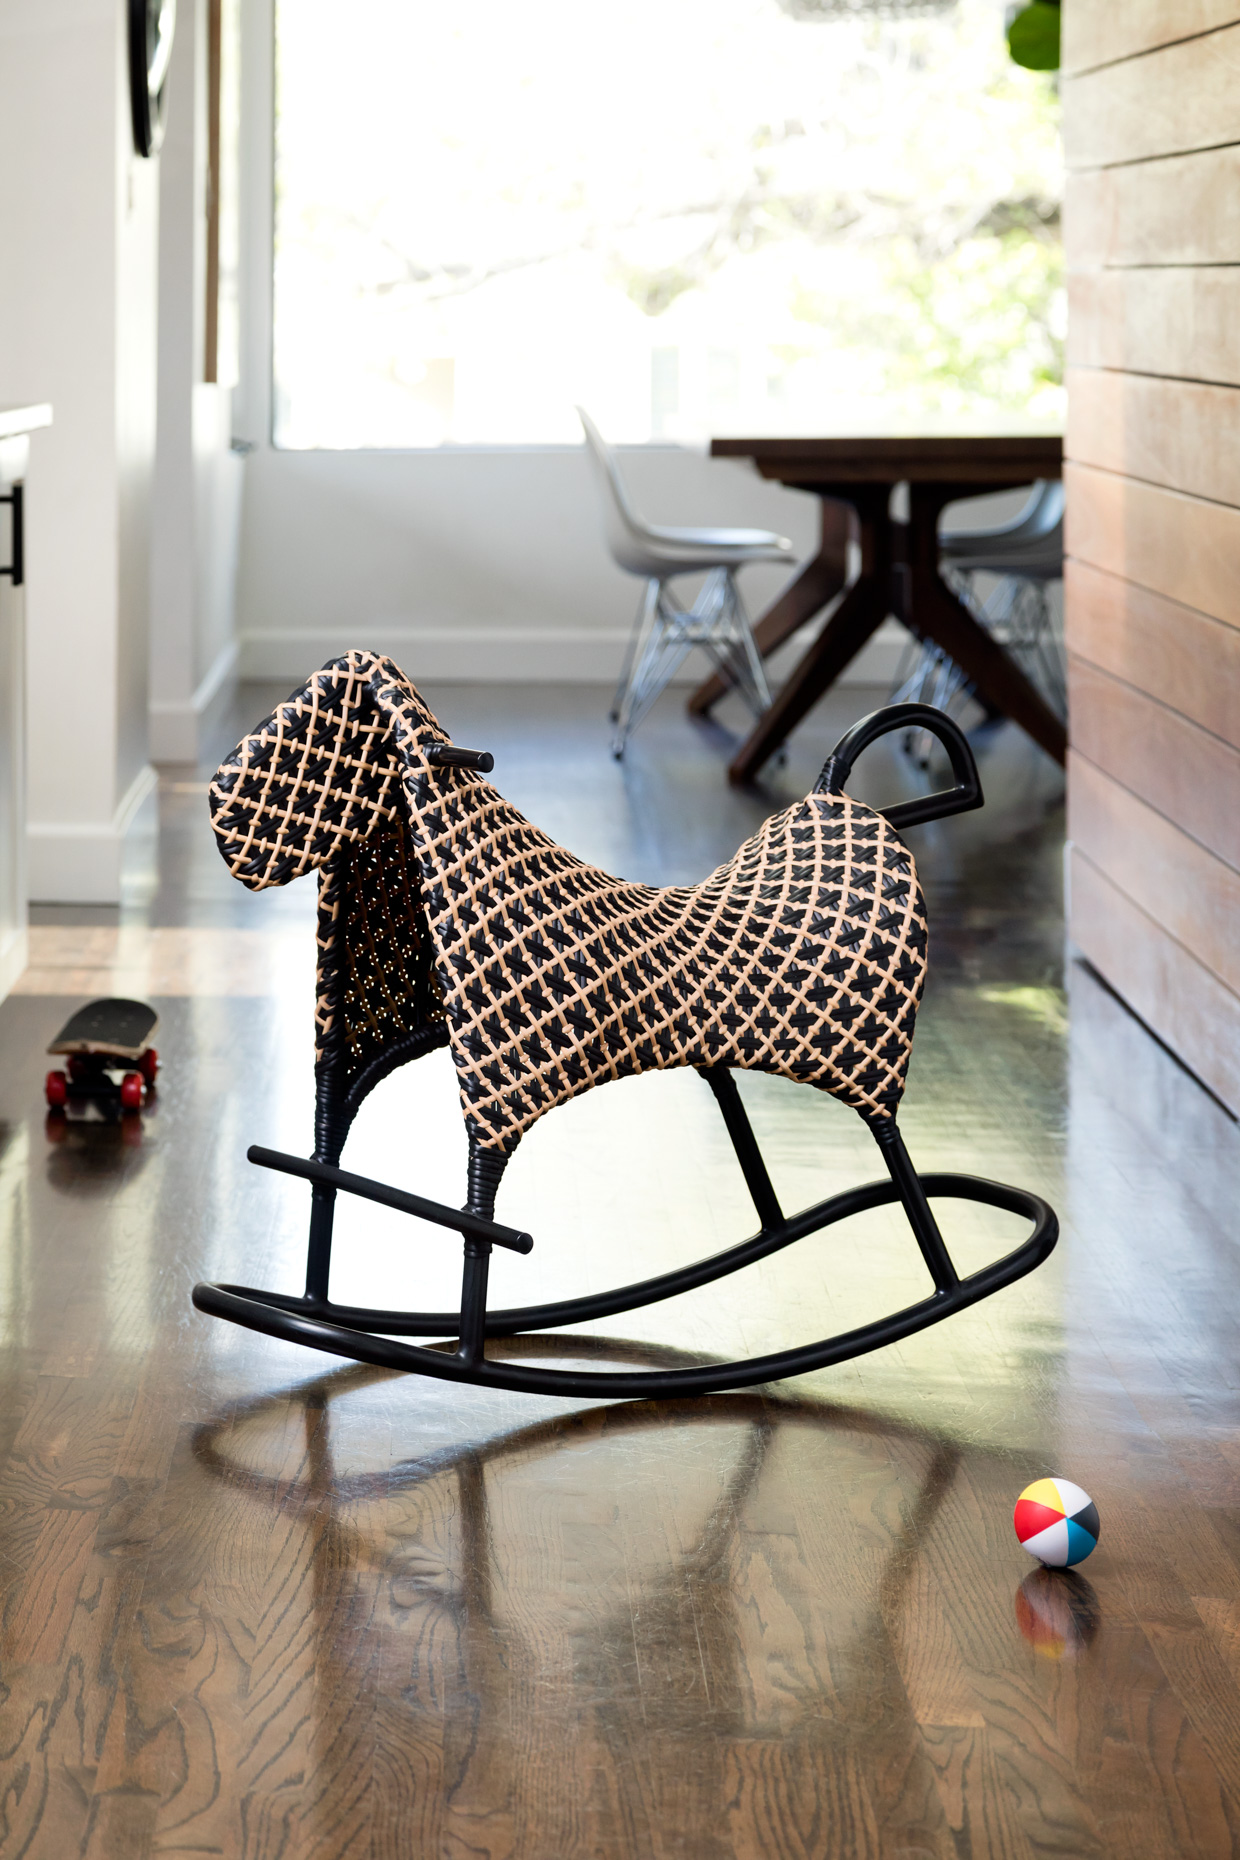 SiriBerting, SiriBertingPhotography,  Interiors, rocking  horse, clean design